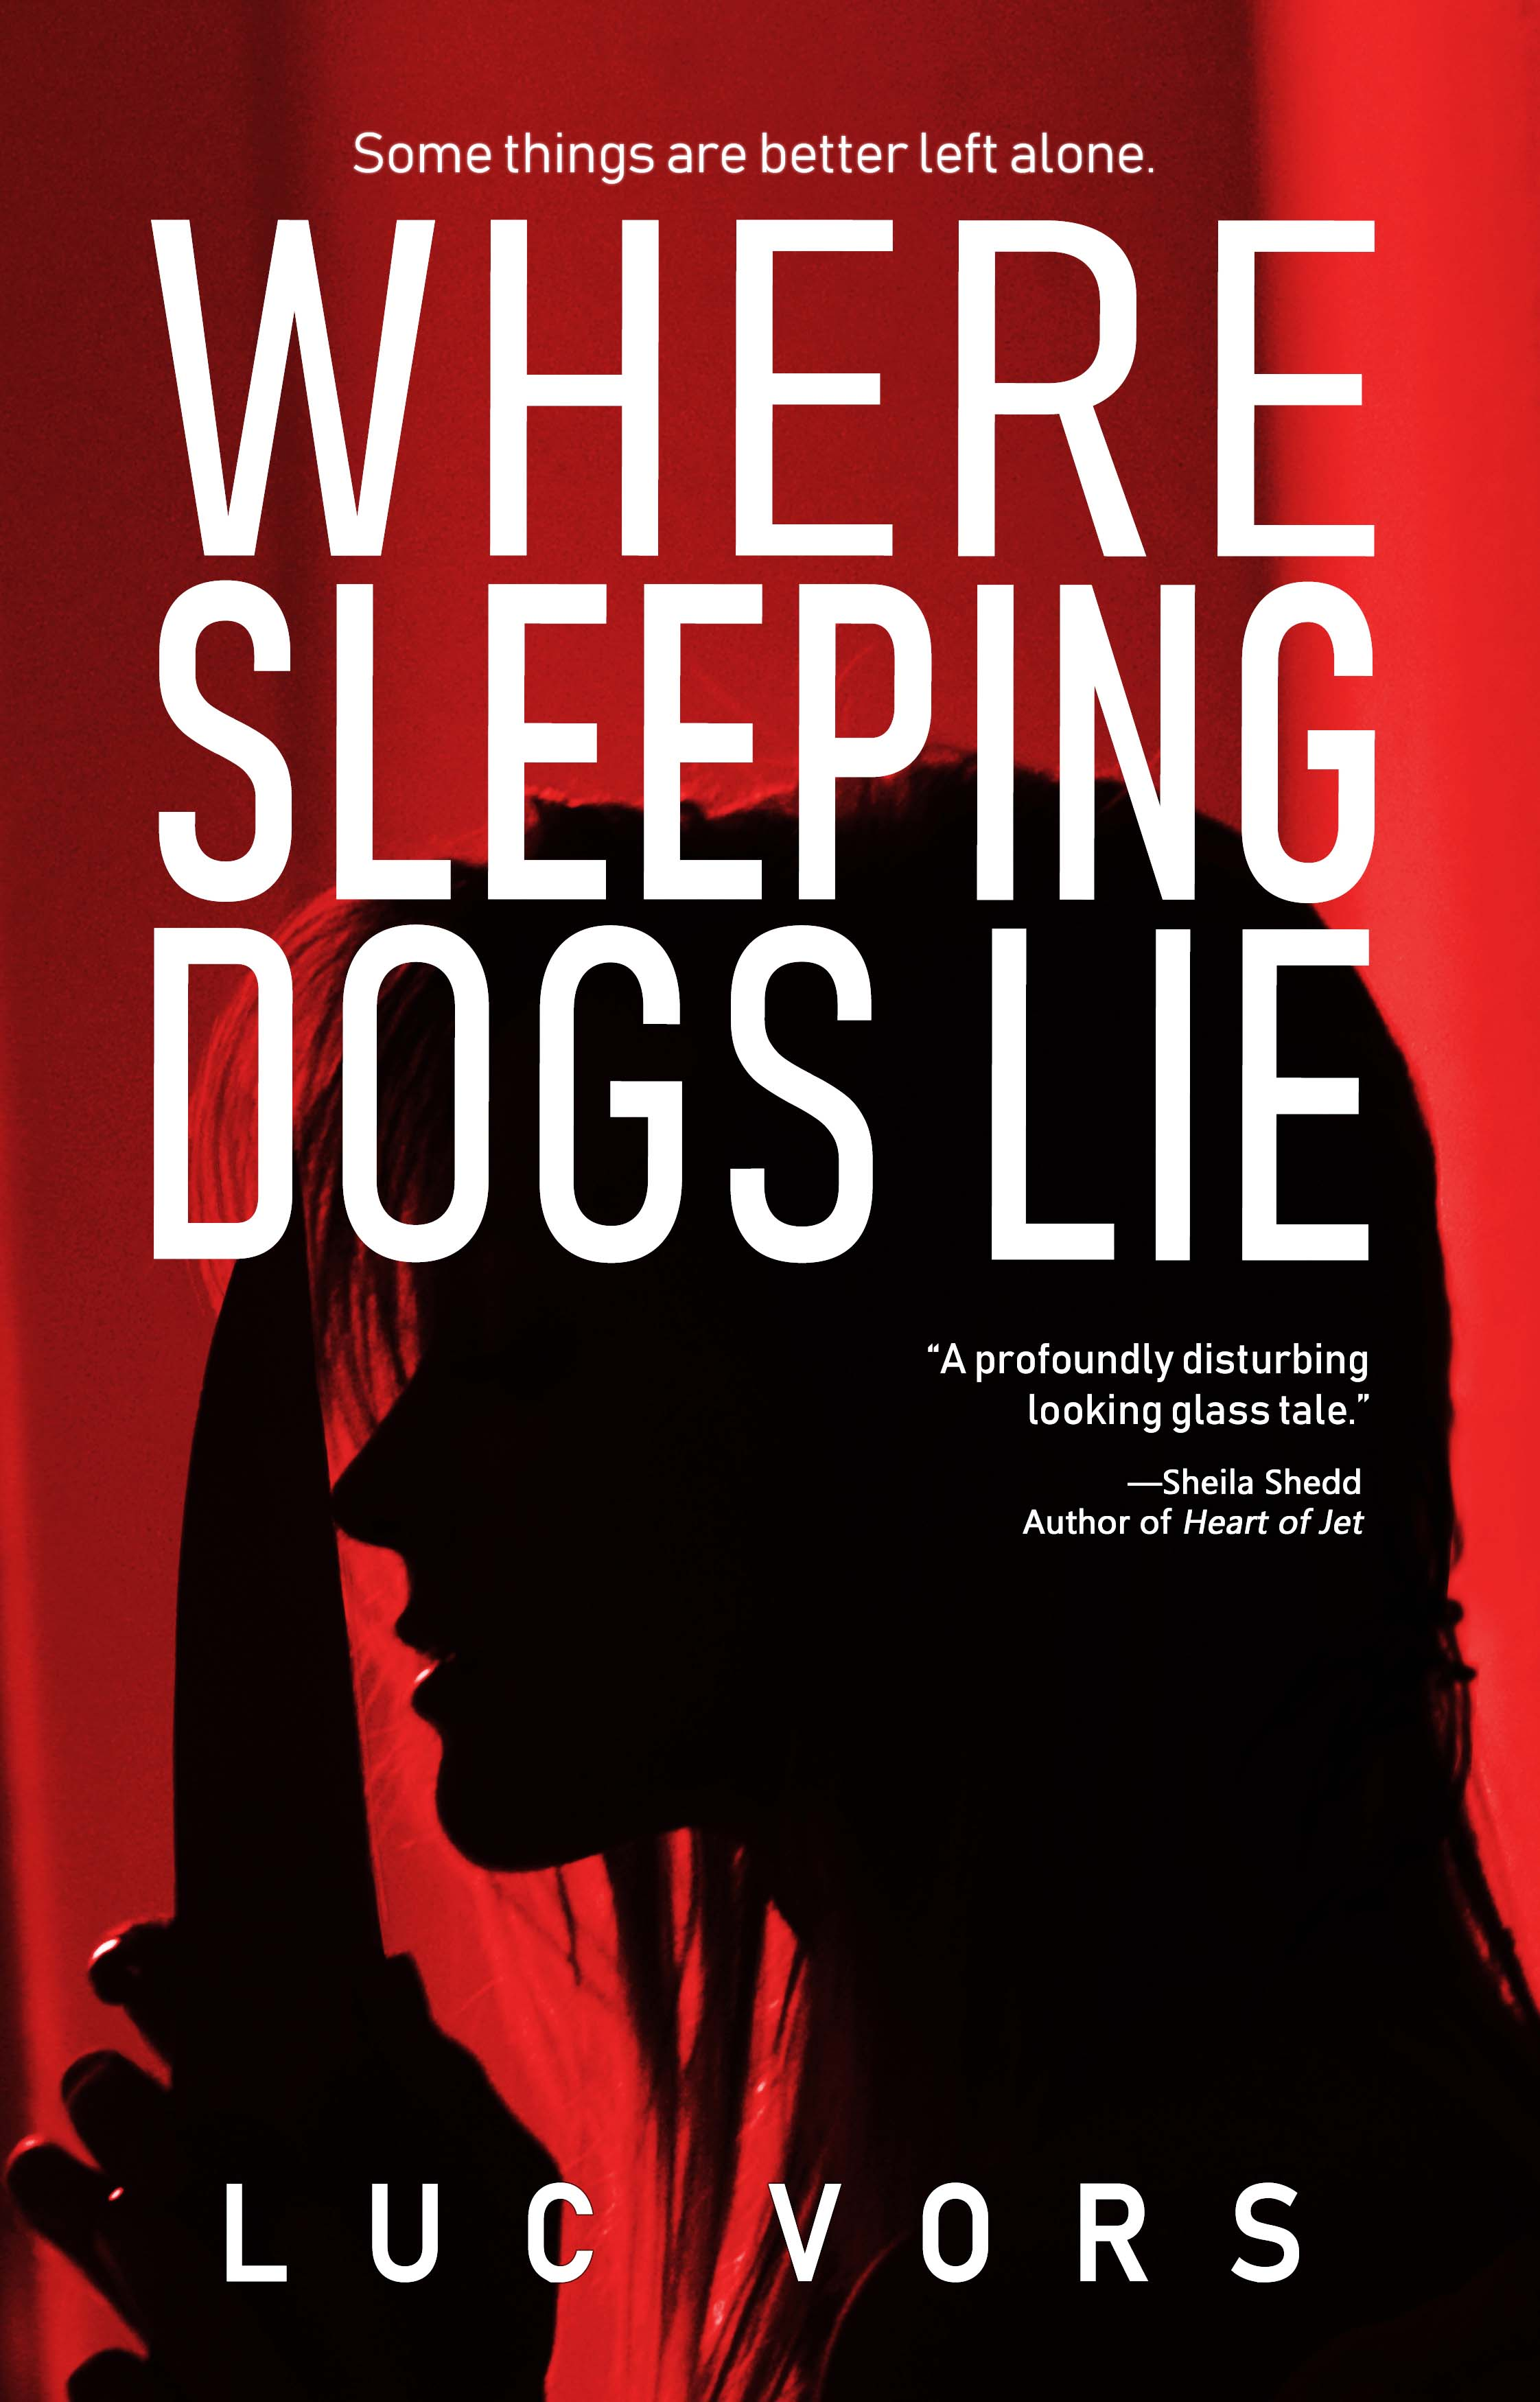 Where Sleeping Dogs Lie by Luc Vors